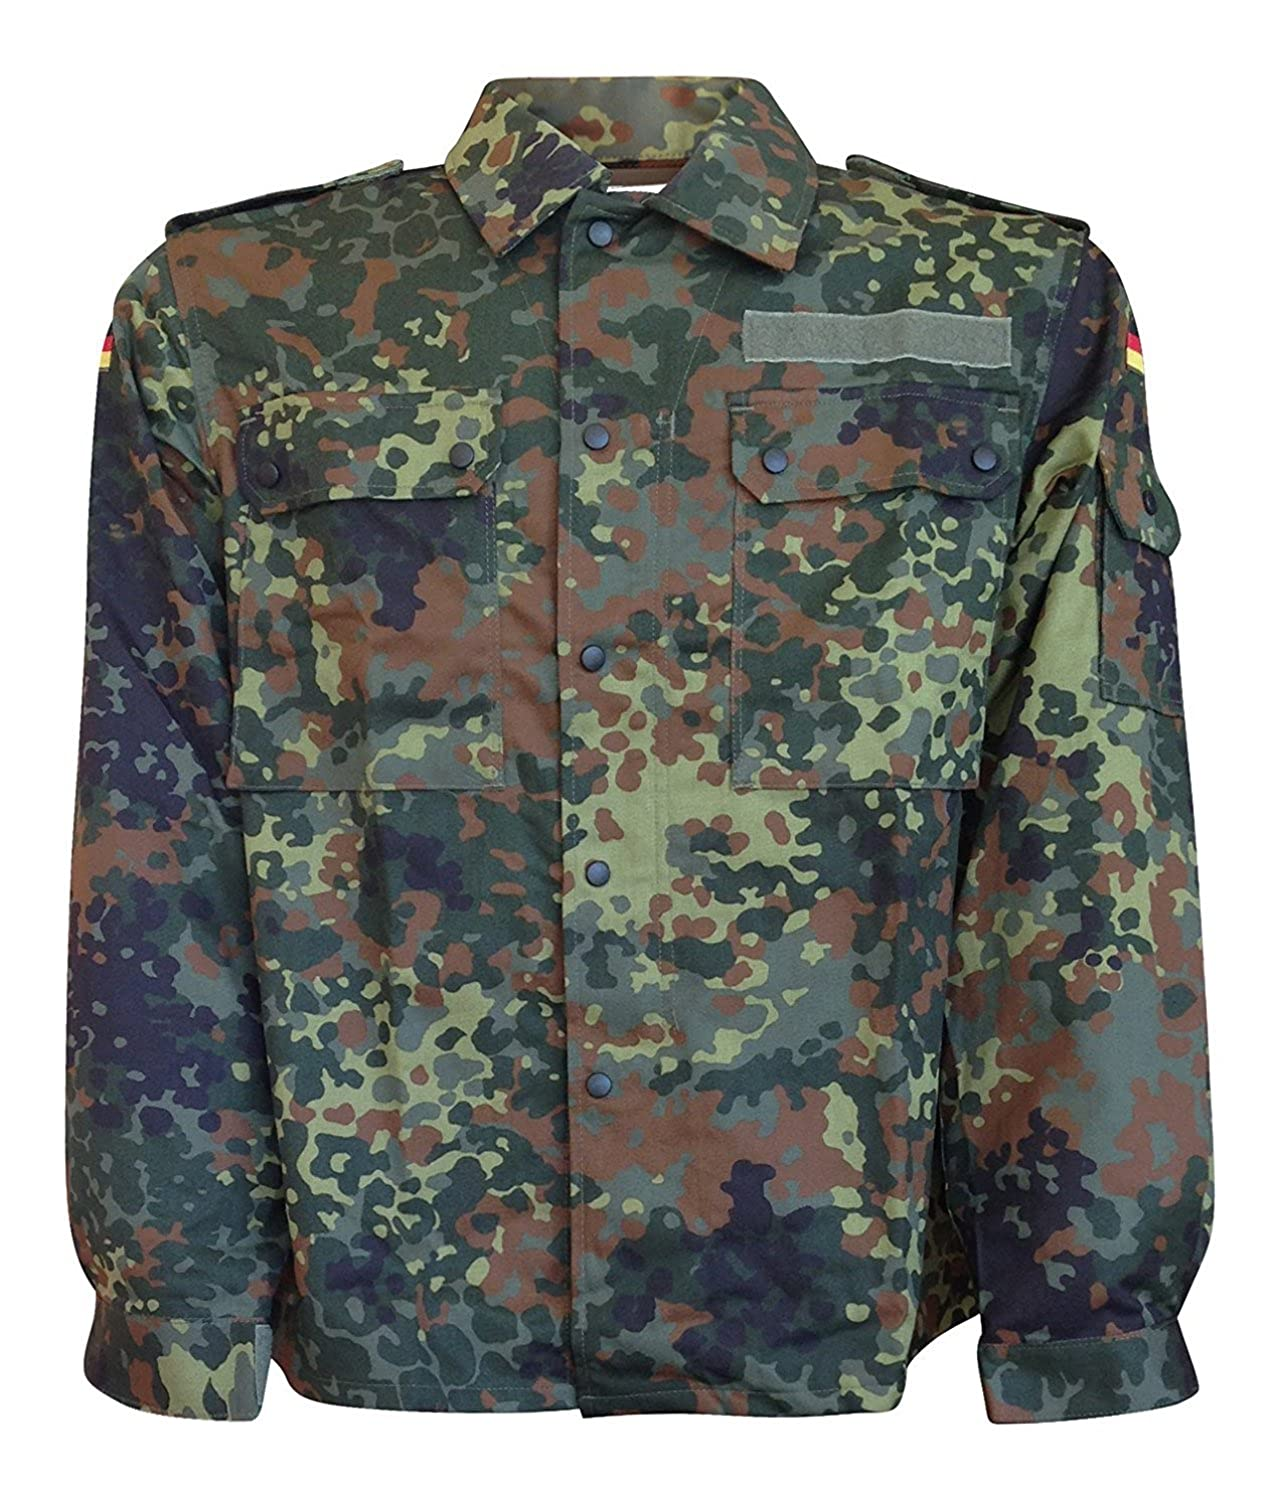 Miltec German Army Flecktarn Camouflage Field Shirt